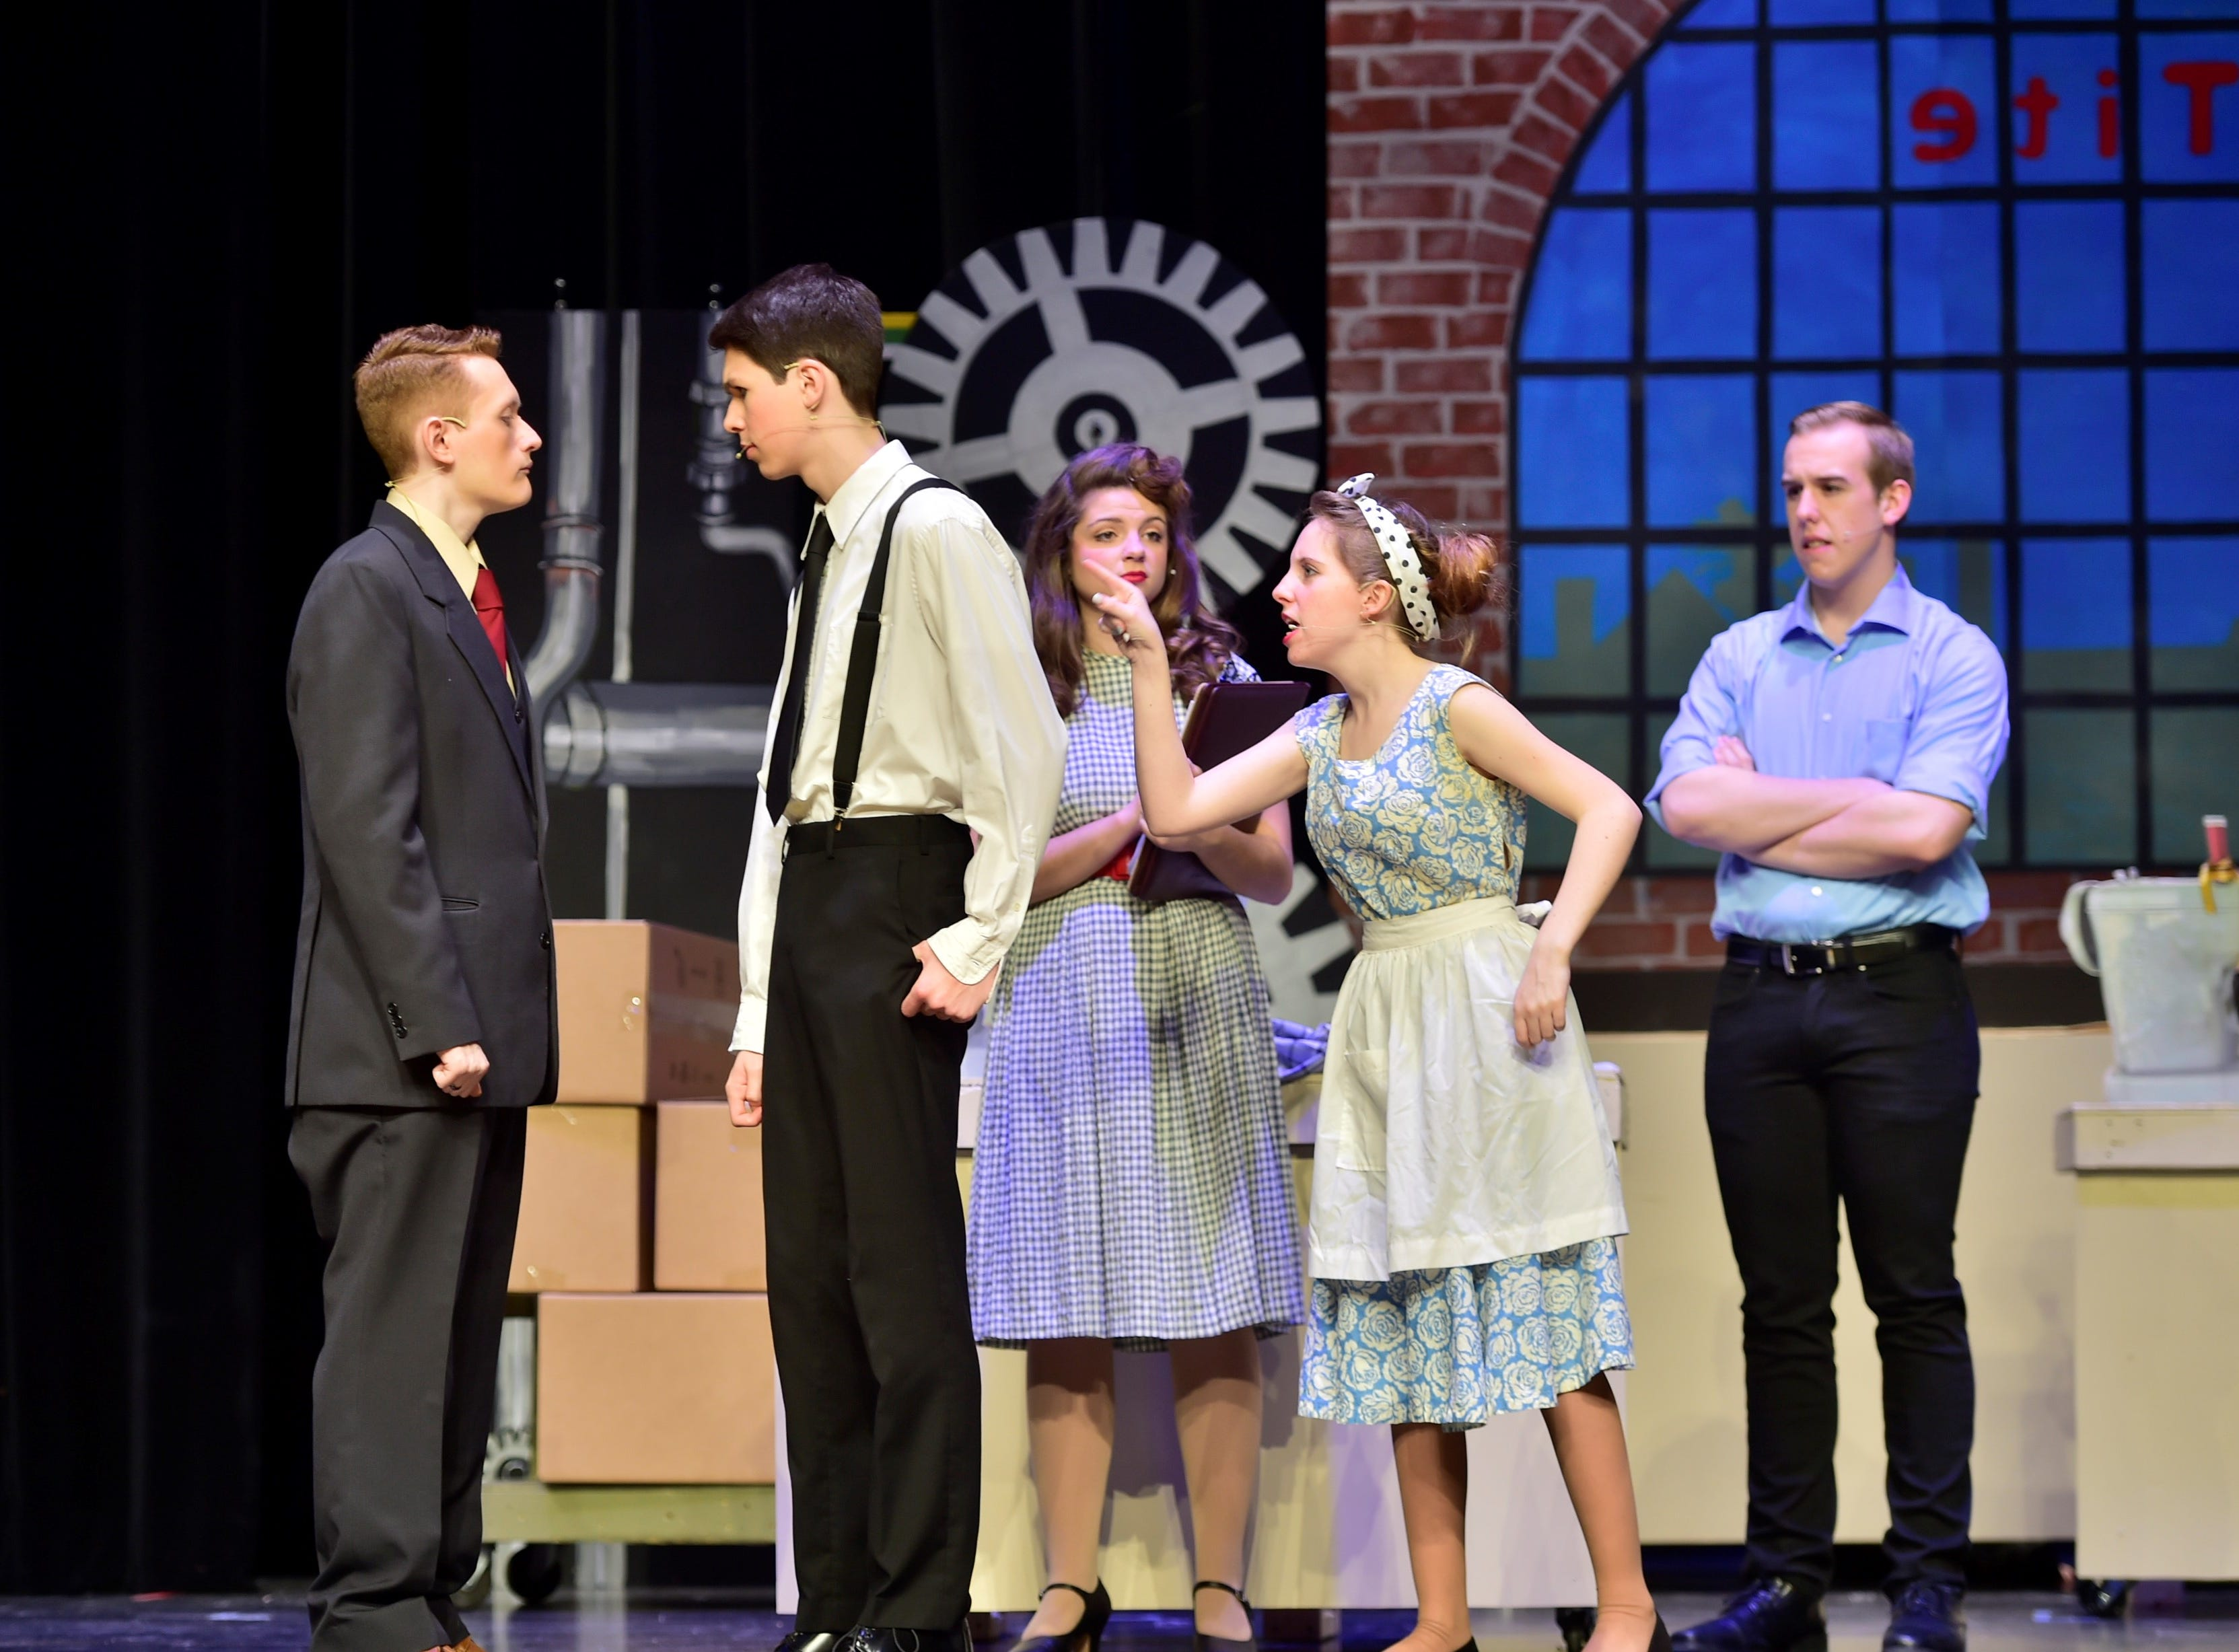 """From left, Daniel Moffat (Hasler), John Payne (Prez), Maddie Kohler (Gladys), Christina Bond (Mae) and Joe Baker (Joe) rehearse a scene from """"The Pajama Game,"""" on Sunday, March 10, 2019, at Waynesboro Area Senior High School. The musical, based on the 1953 novel, """"7 1/2 Cents"""" by Richard Bissell, tells the story of a pajama factory where workers are fighting for a raise of 7 1/2 cents. Showtimes for Waynesboro Area School District's All-School Production of """"The Pajama Game"""" are 7 p.m. Friday and Saturday, March 15 and 16, and 2 p.m. Sunday, March 17 in the high school auditorium. For choose-your-seat tickets, $10 for adults and $6 for children under 12, go to https://washsmusic.ticketleap.com/the-pajama-game/. General admission tickets will also be sold at the door."""